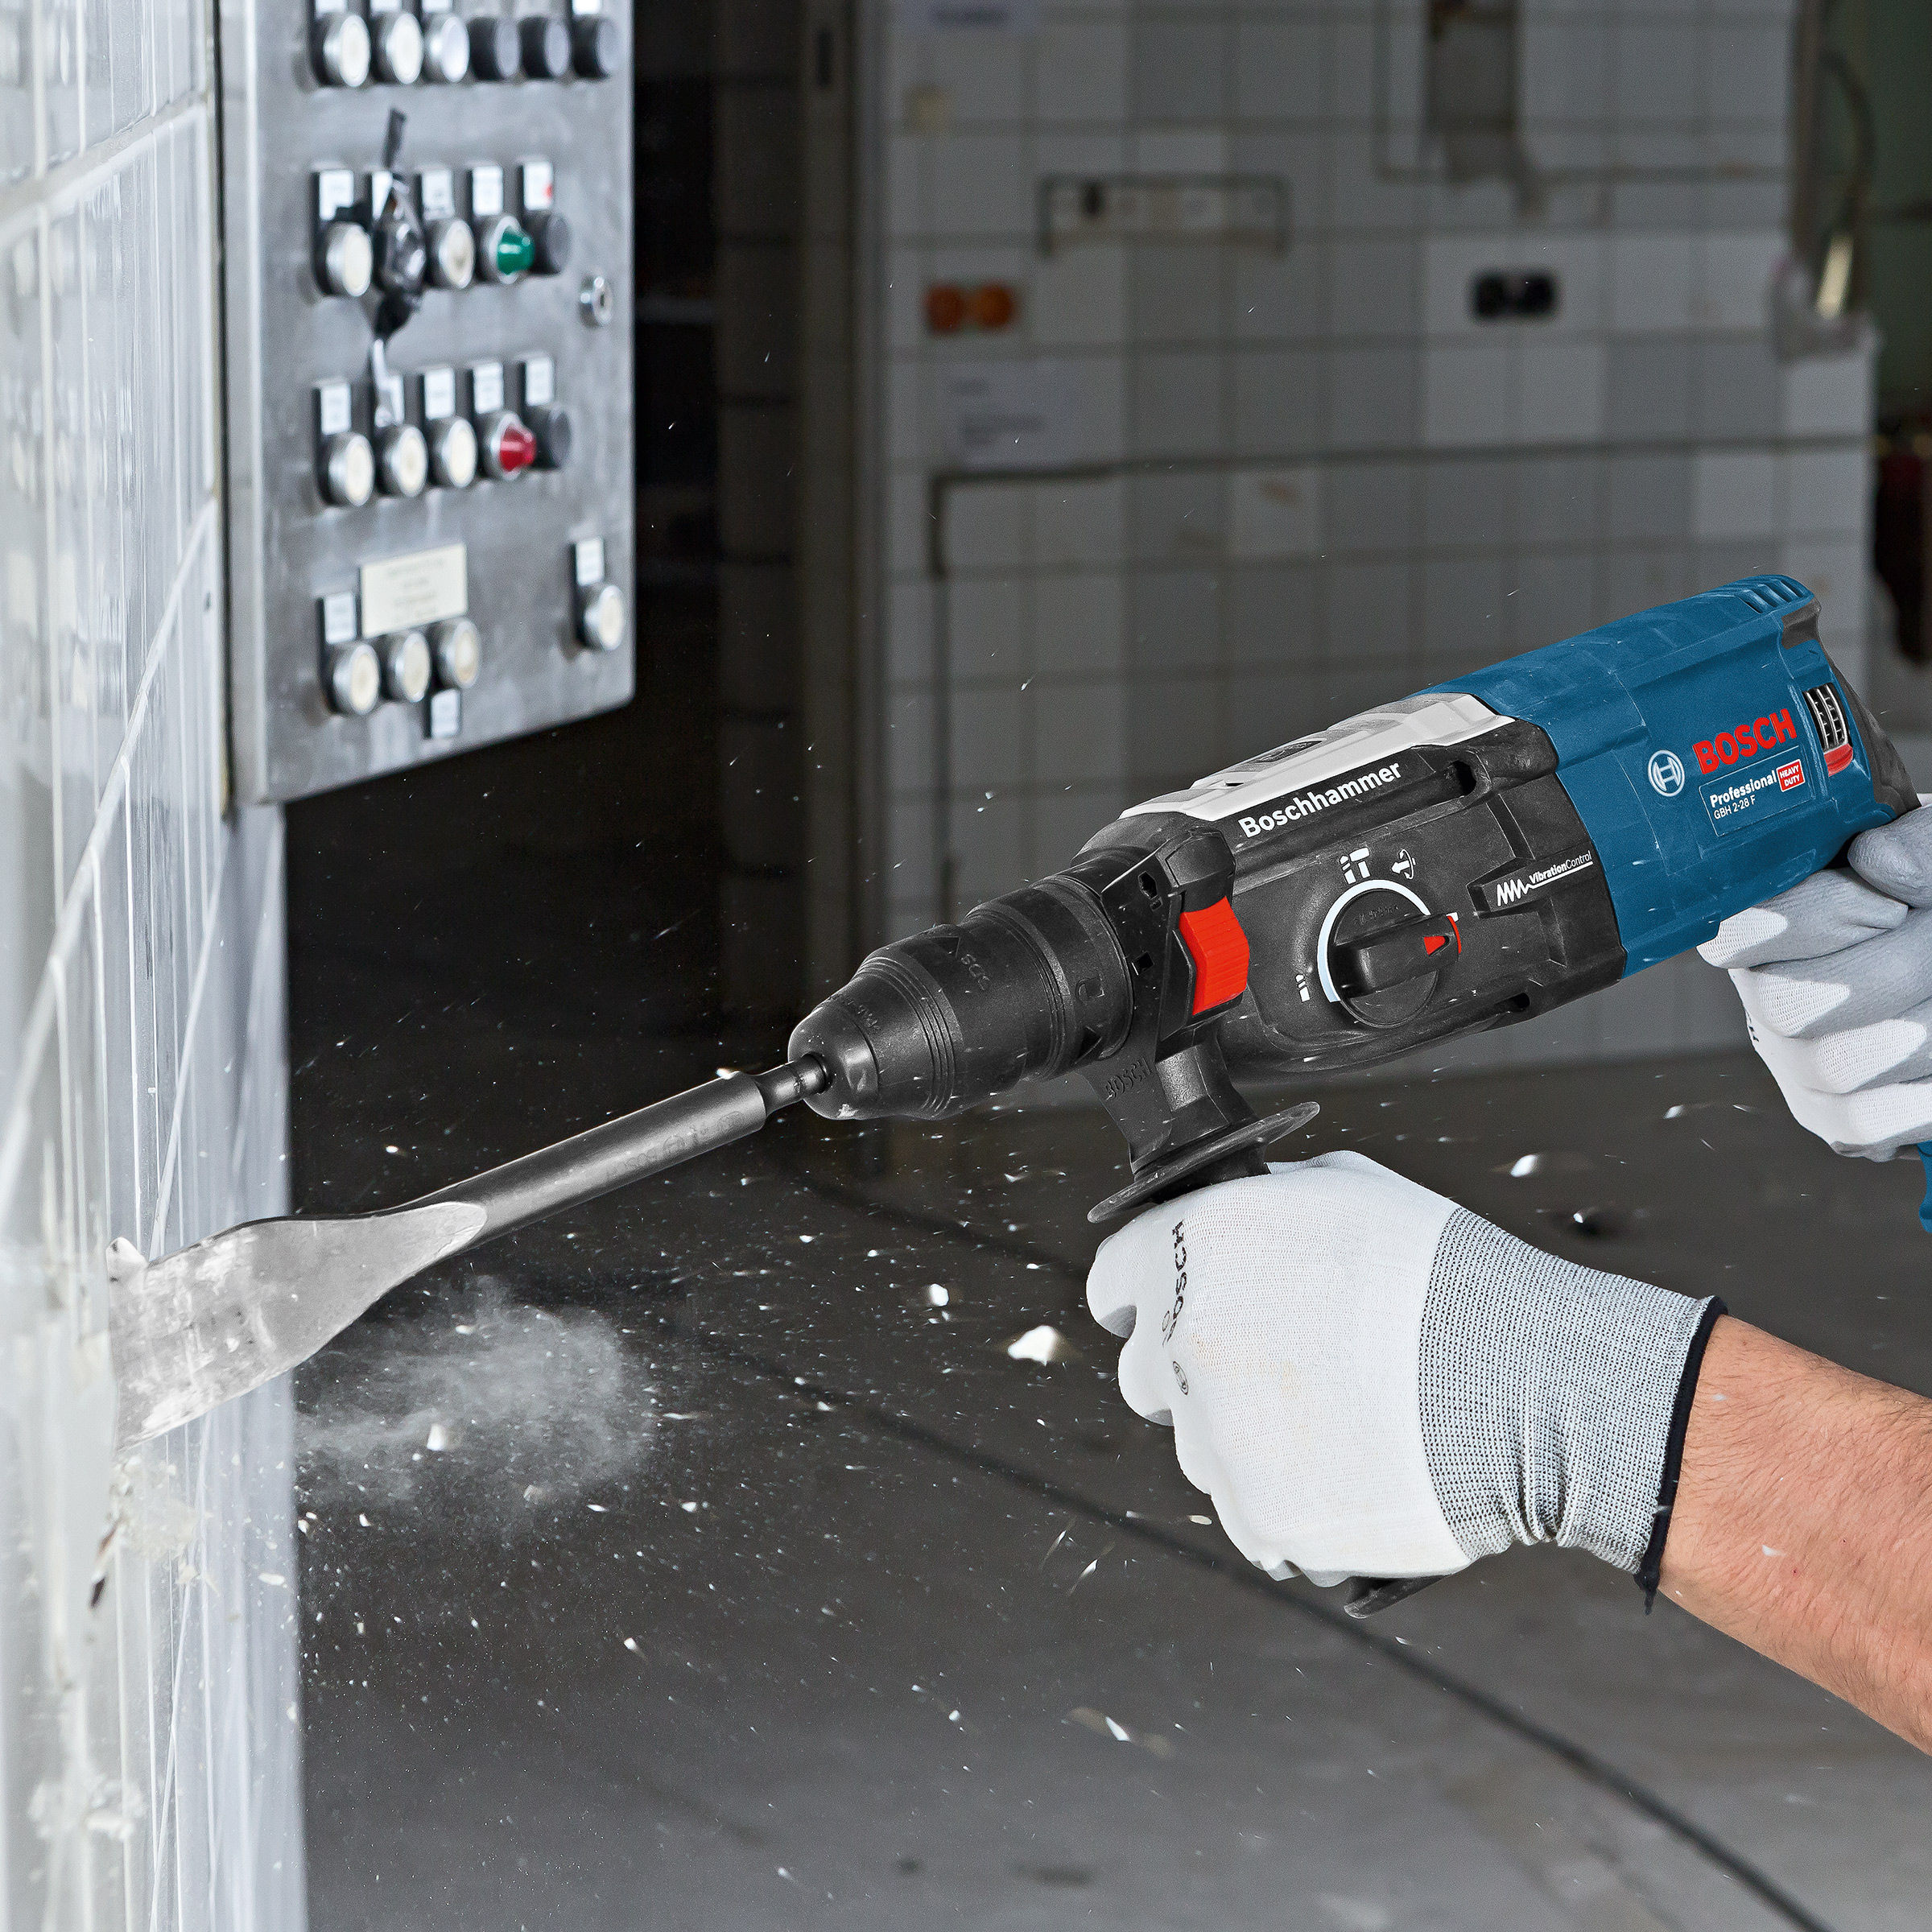 toolstop bosch gbh 2 28 f 2kg sds rotary hammer drill. Black Bedroom Furniture Sets. Home Design Ideas